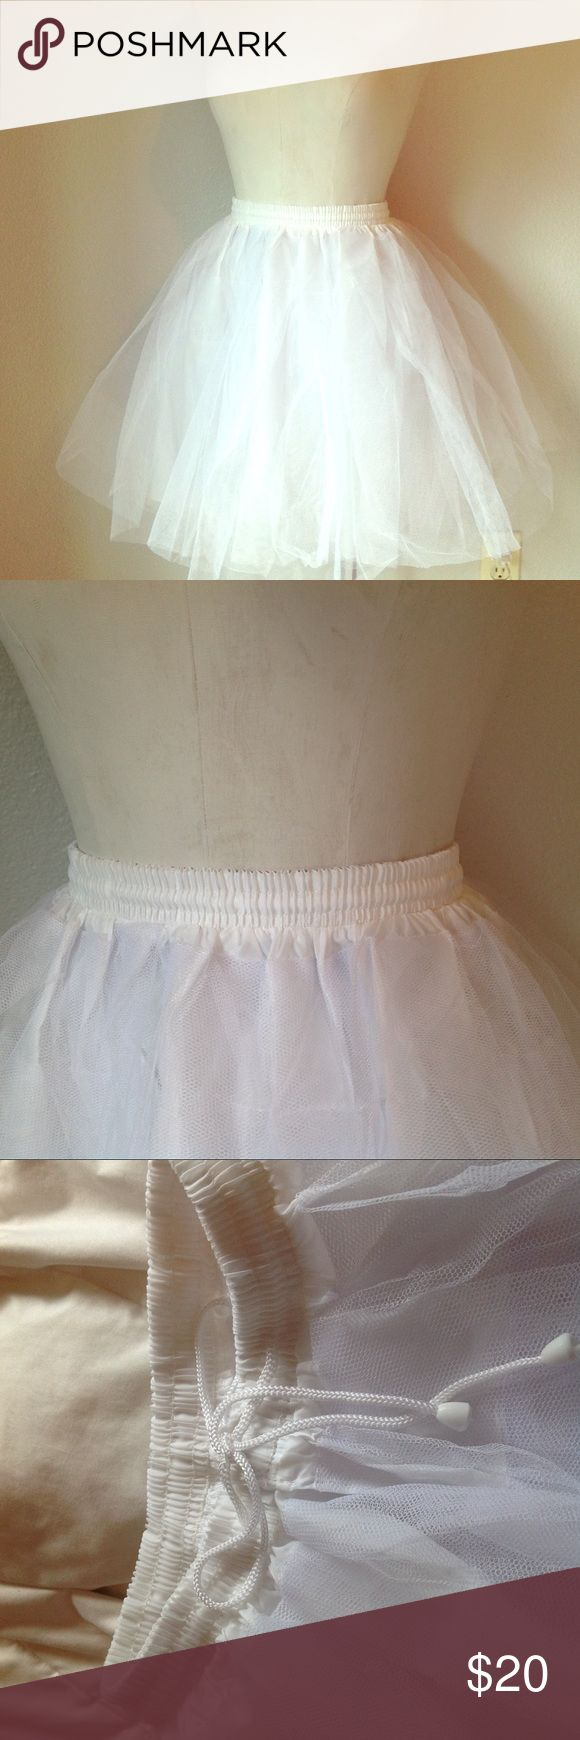 """👗 TULLE KNEE LENGTH PETTICOAT SKIRT SLIP 👗 👗 Fun, fun, fun this is a great piece for under cocktail dresses, swing skirts, costumes or just by itself, measures 20"""" long including elastic waistband, which has a drawstring and can stretch to about 38"""", all measurements approximate, 3 layers of tulle plus one liner layer,  new without tags Skirts"""